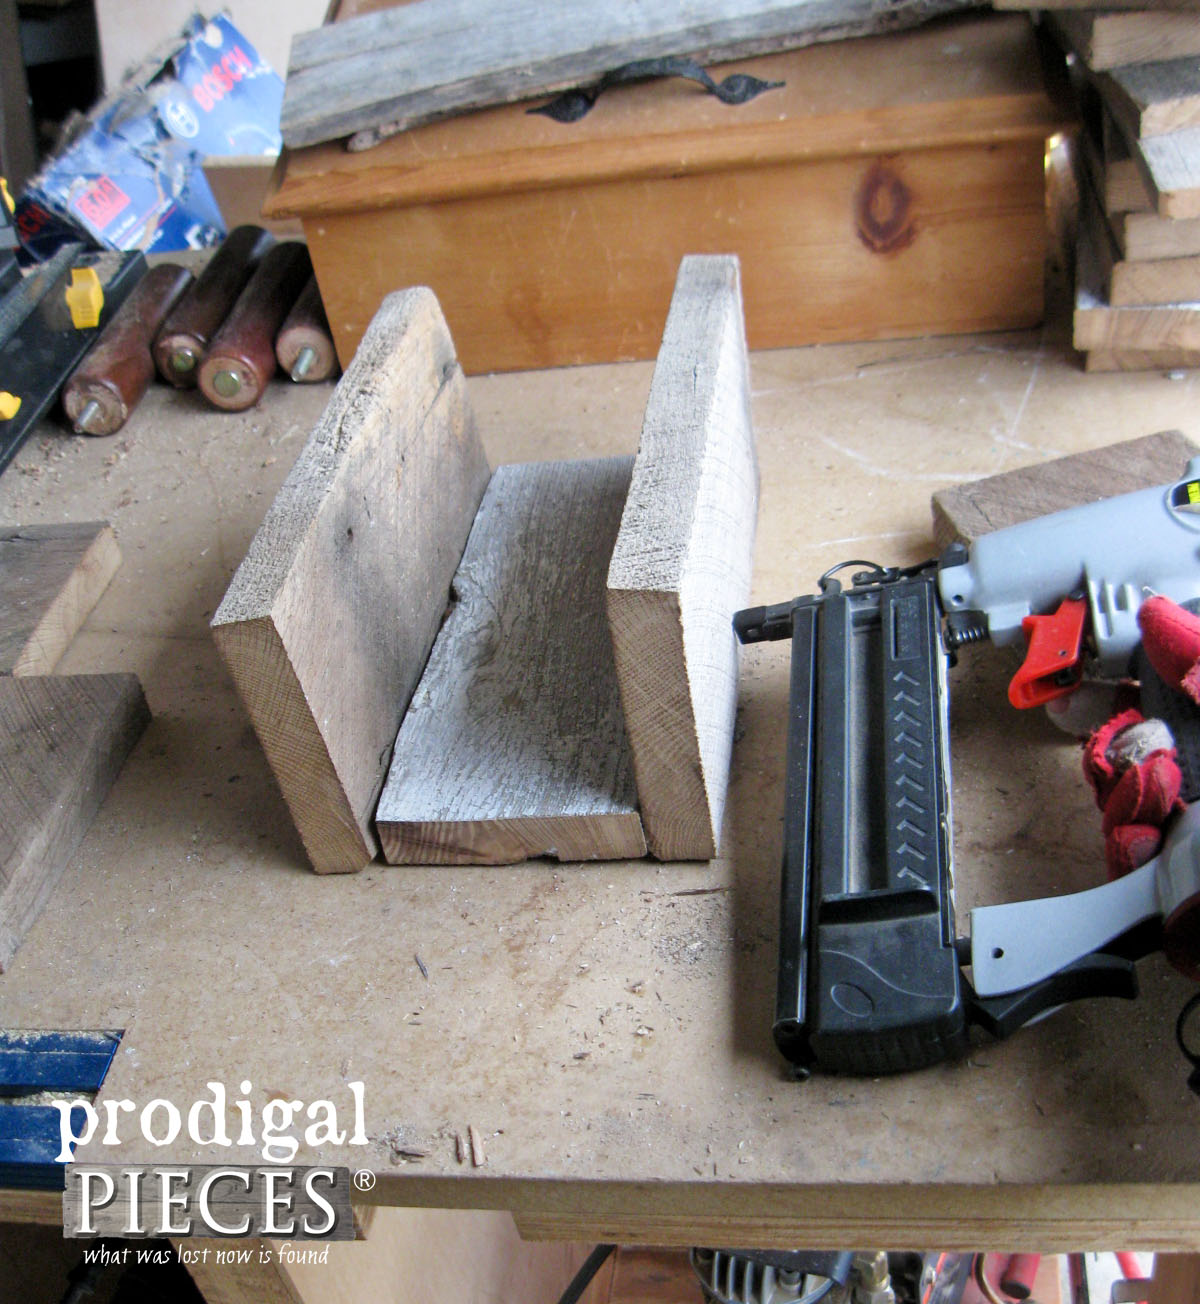 Nailing Wooden Caddy Sides Together | Prodigal Pieces | www.prodigalpieces.com